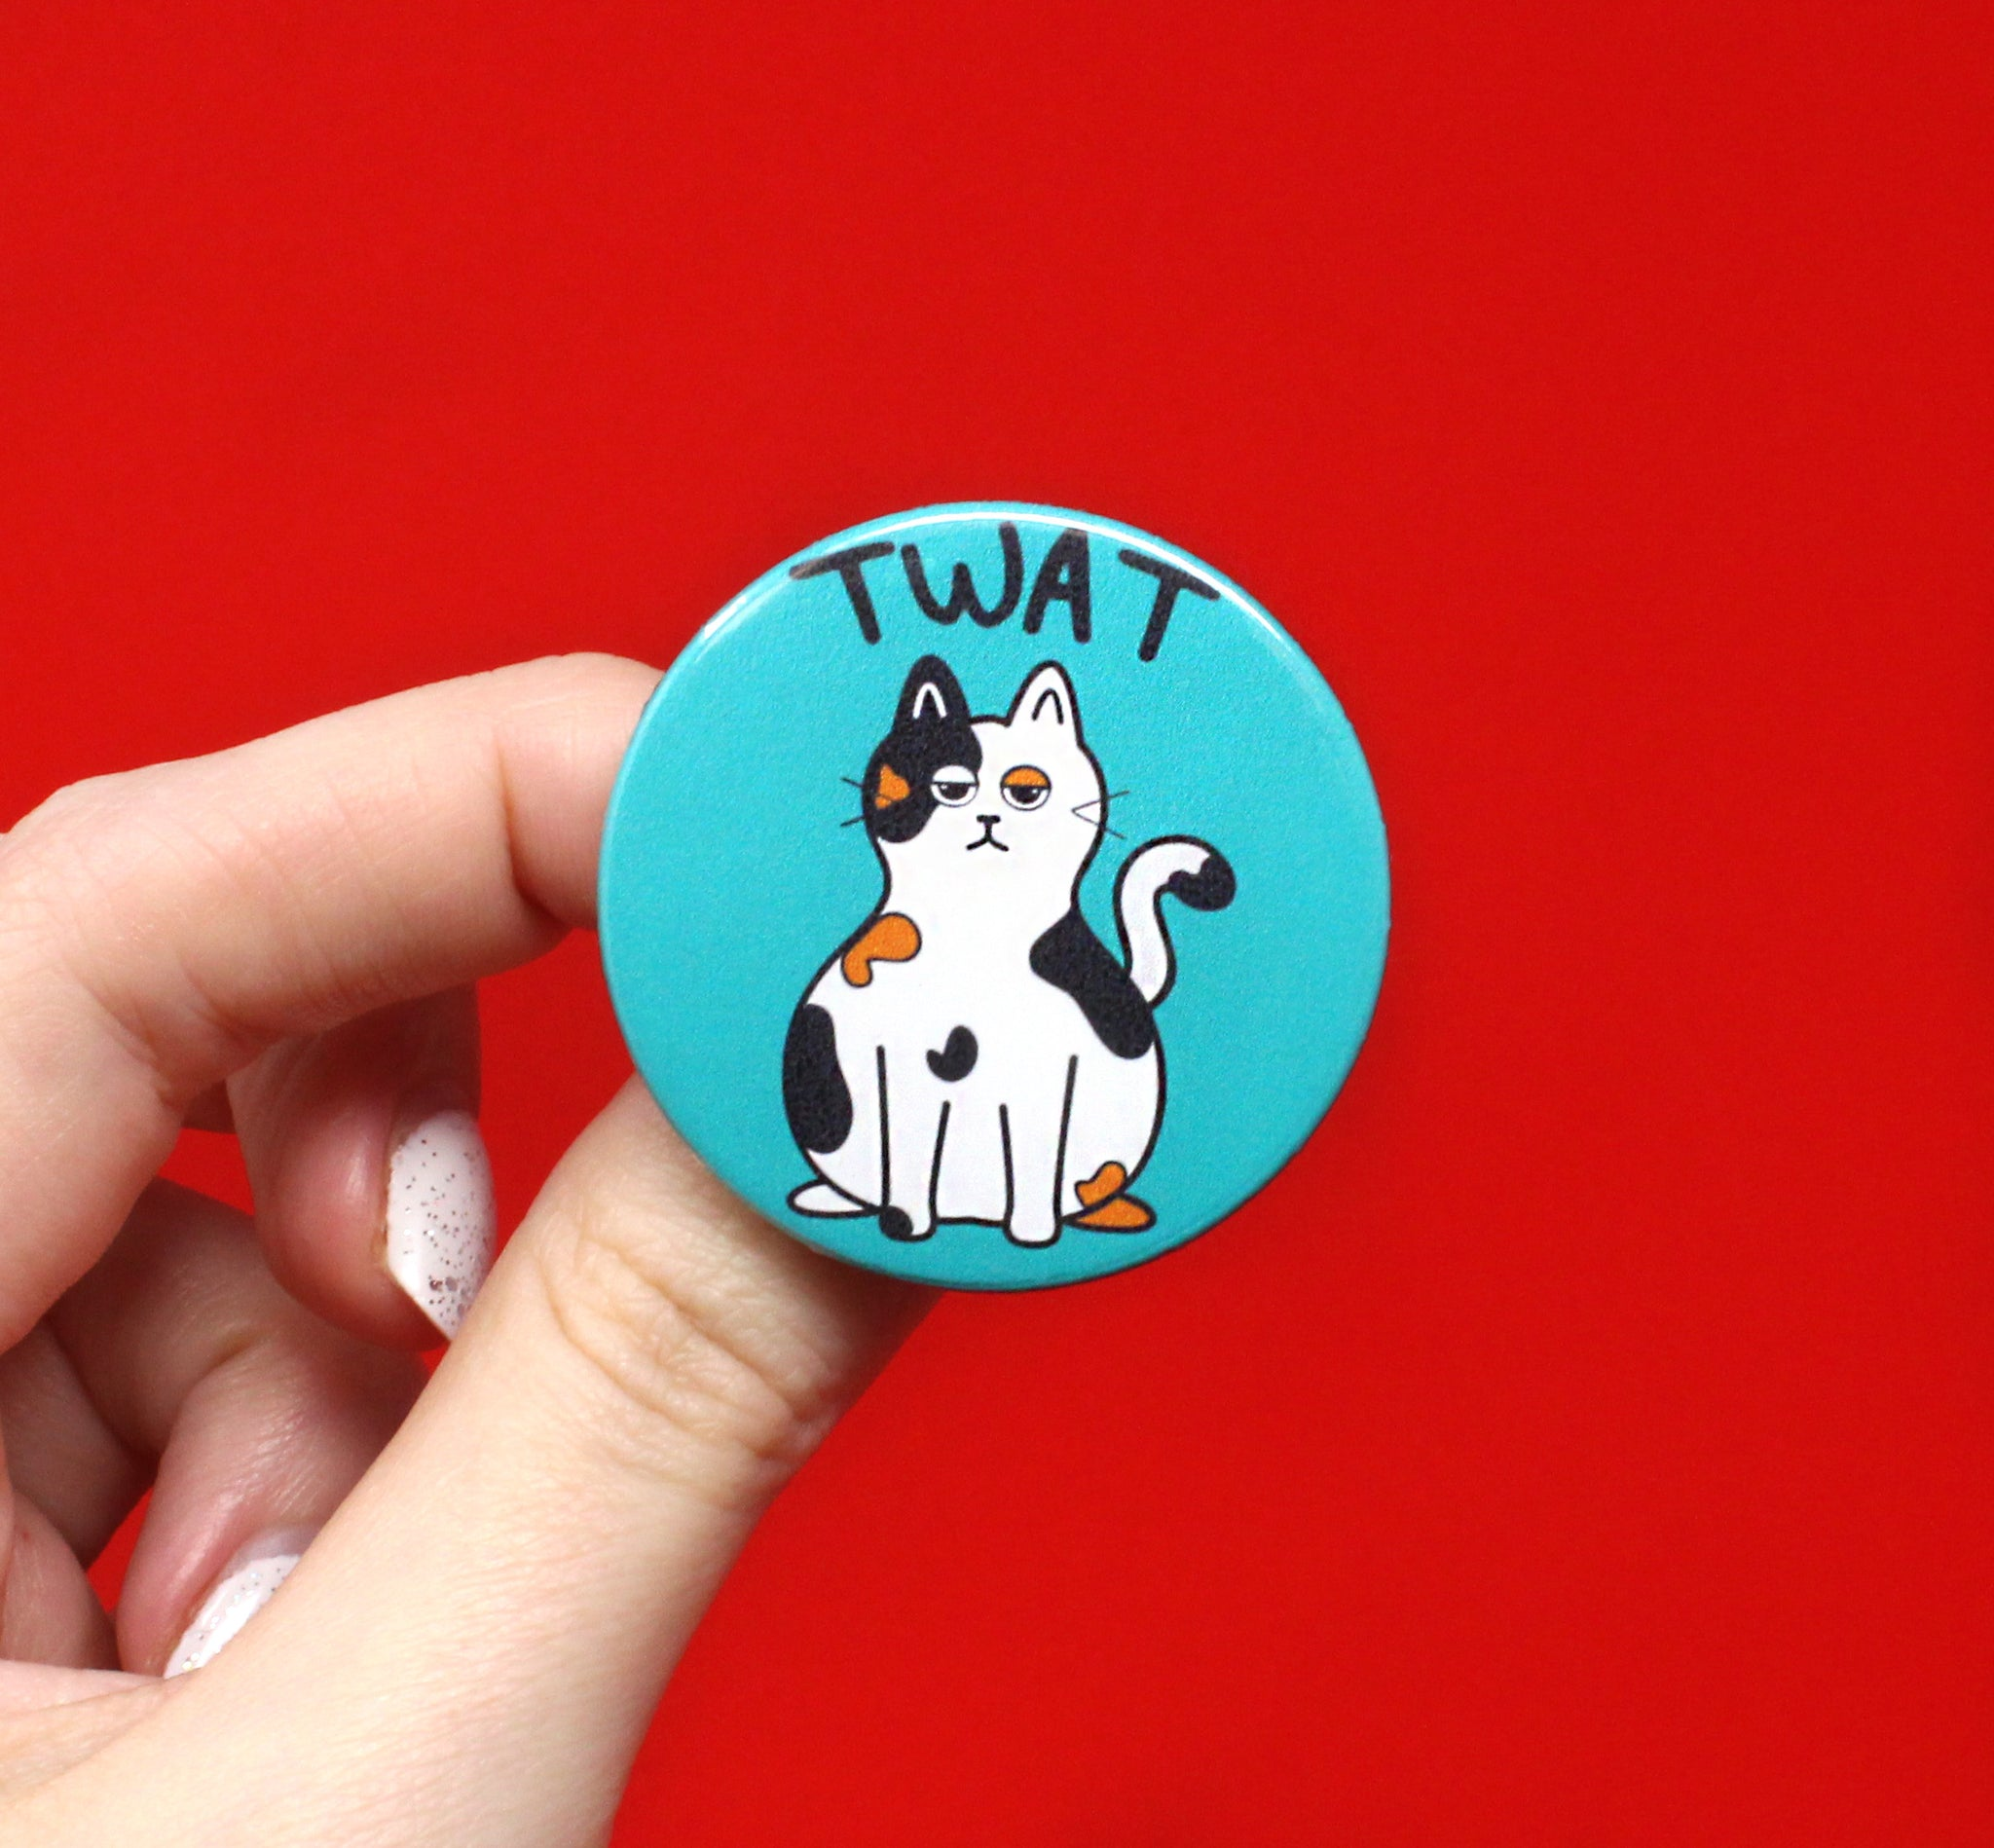 Twat Cat Badge